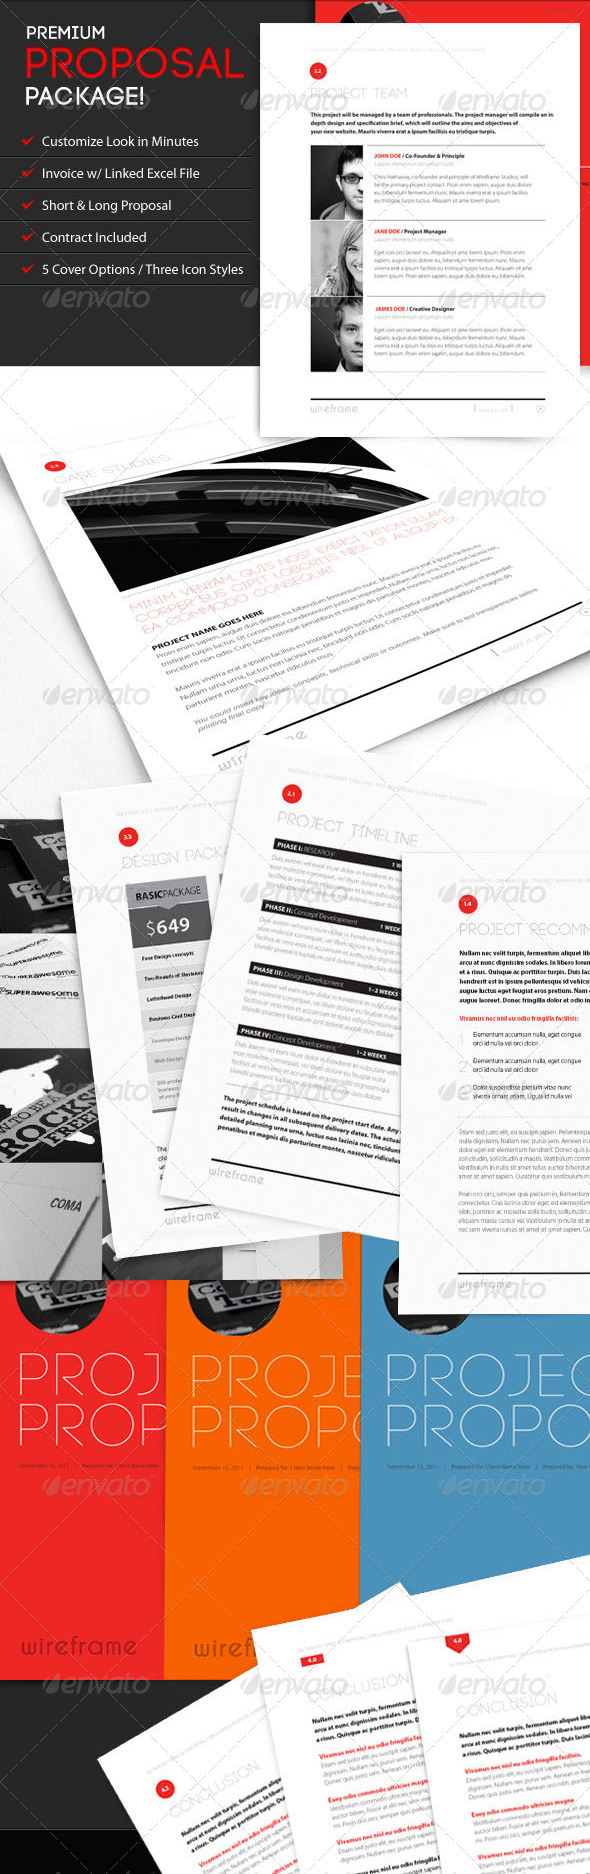 Graphic River Wireframe Proposal Template w/ Invoice & Contract Print Templates -  Stationery  Proposals & Invoices 544155